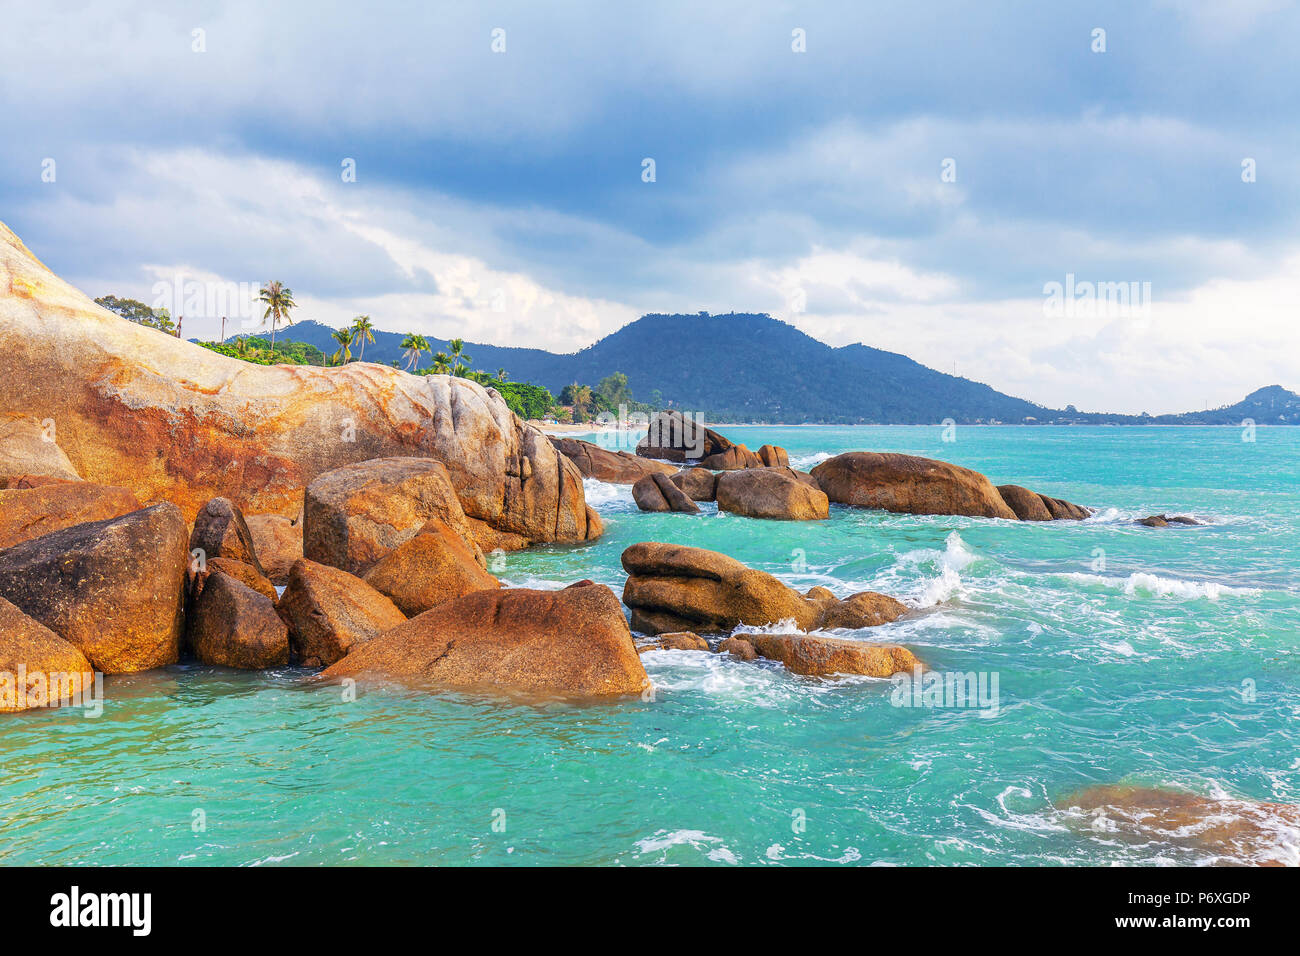 Hin Ta and Hin Yai Rocks. A famous place on the island of Koh Samui in Thailand. - Stock Image